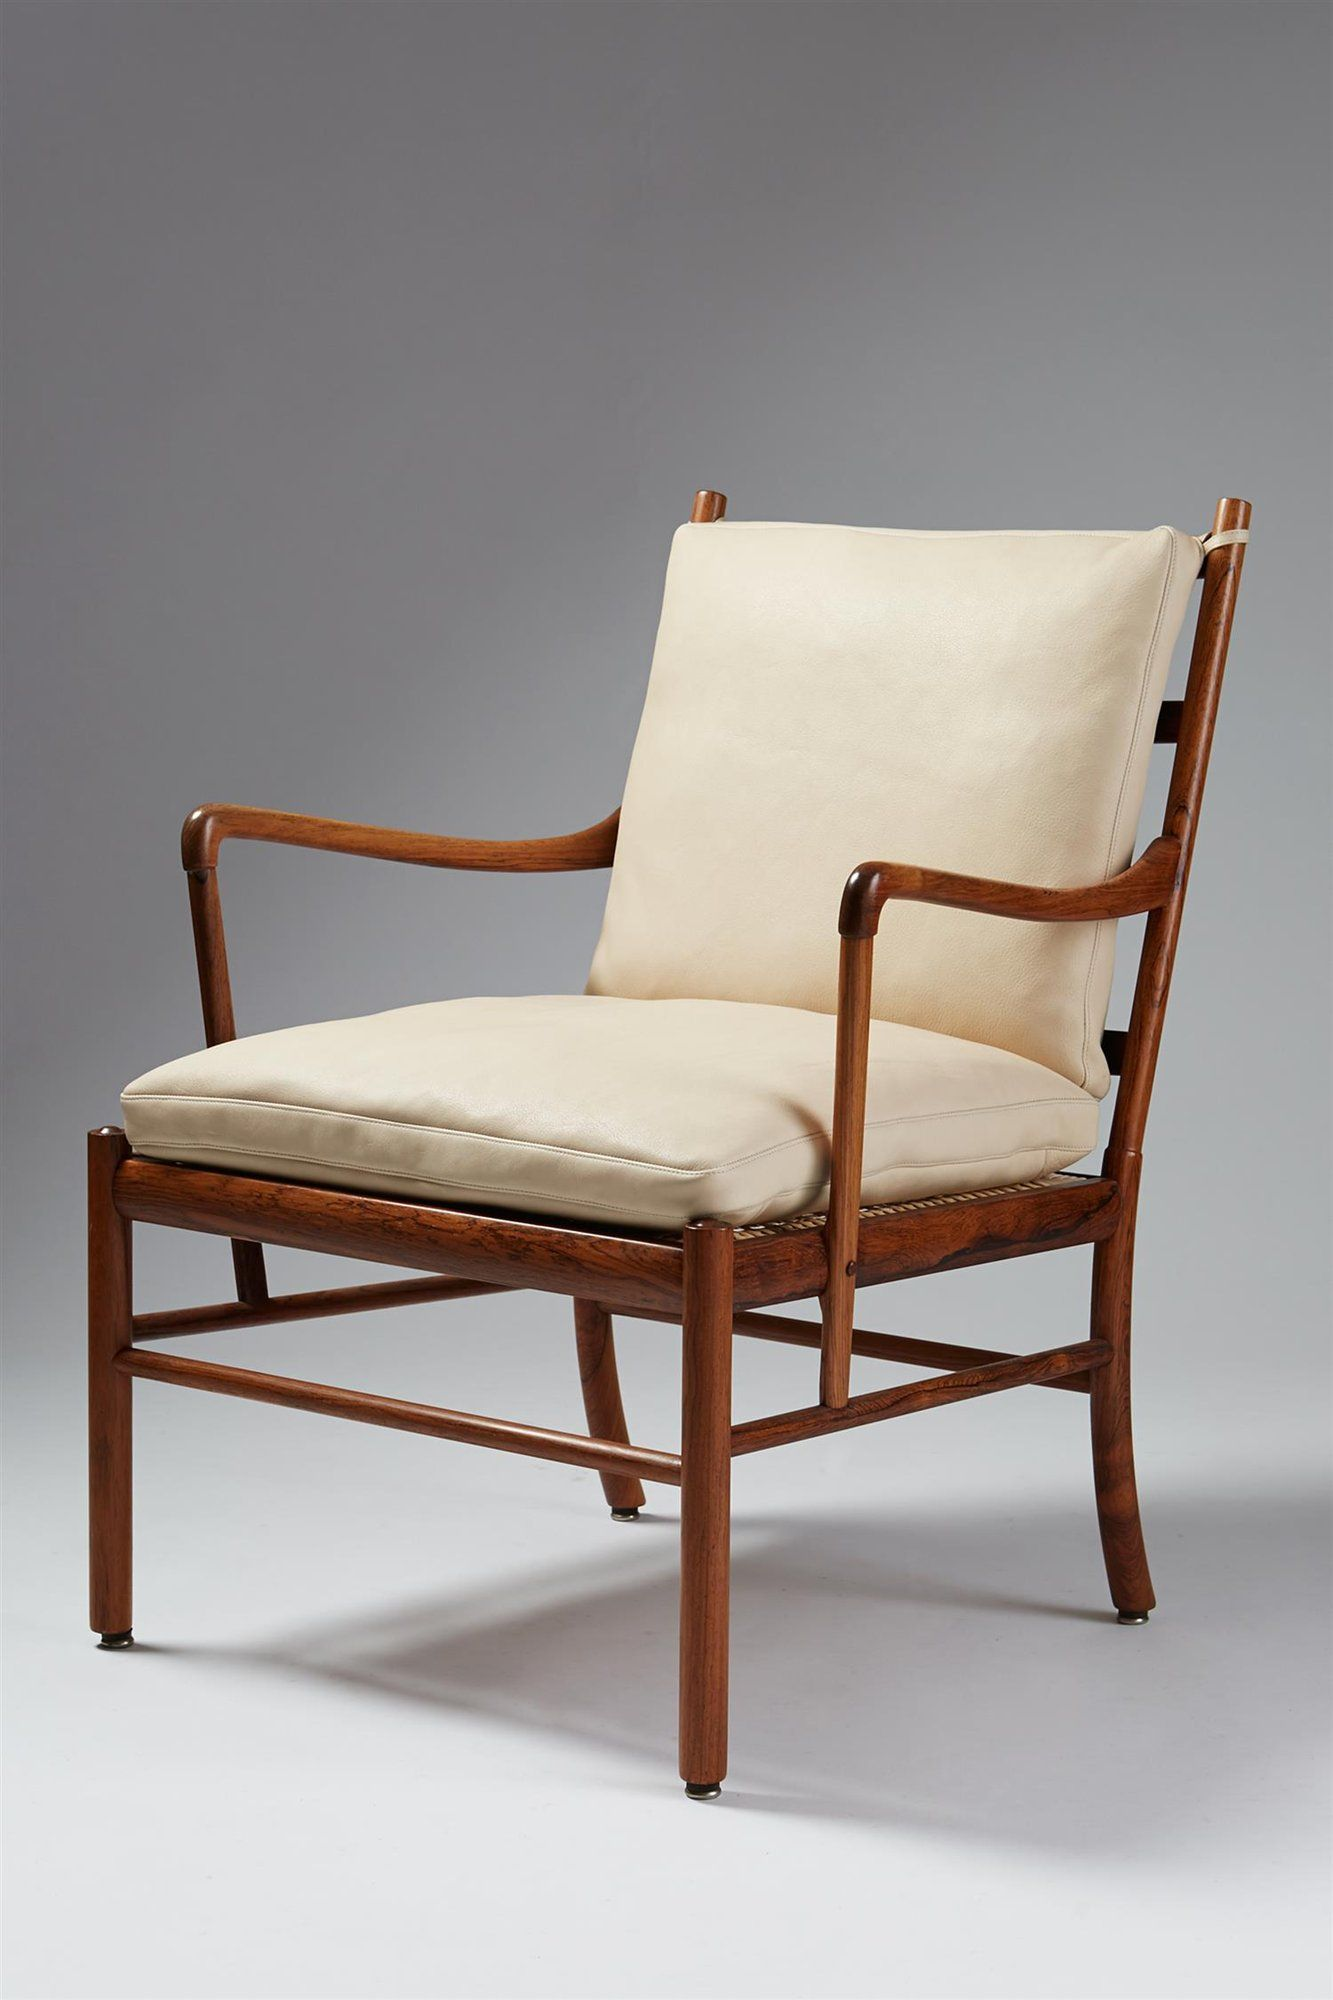 Ole wanscher for p jeppesen leather rosewood cane armchair